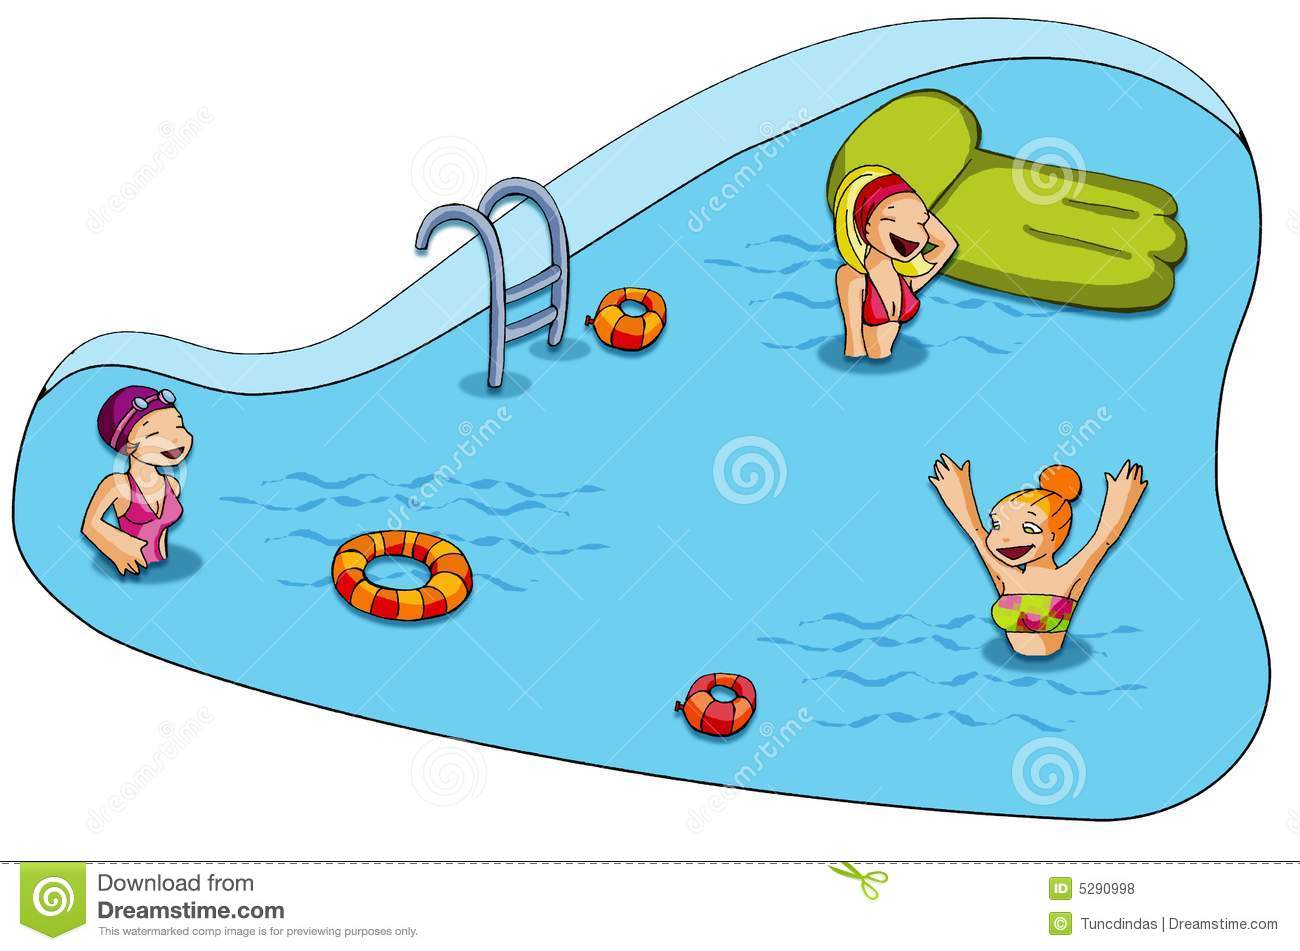 Swimming Pool Royalty Free Stock Photos -Swimming Pool Royalty Free Stock Photos Image 5290998-4